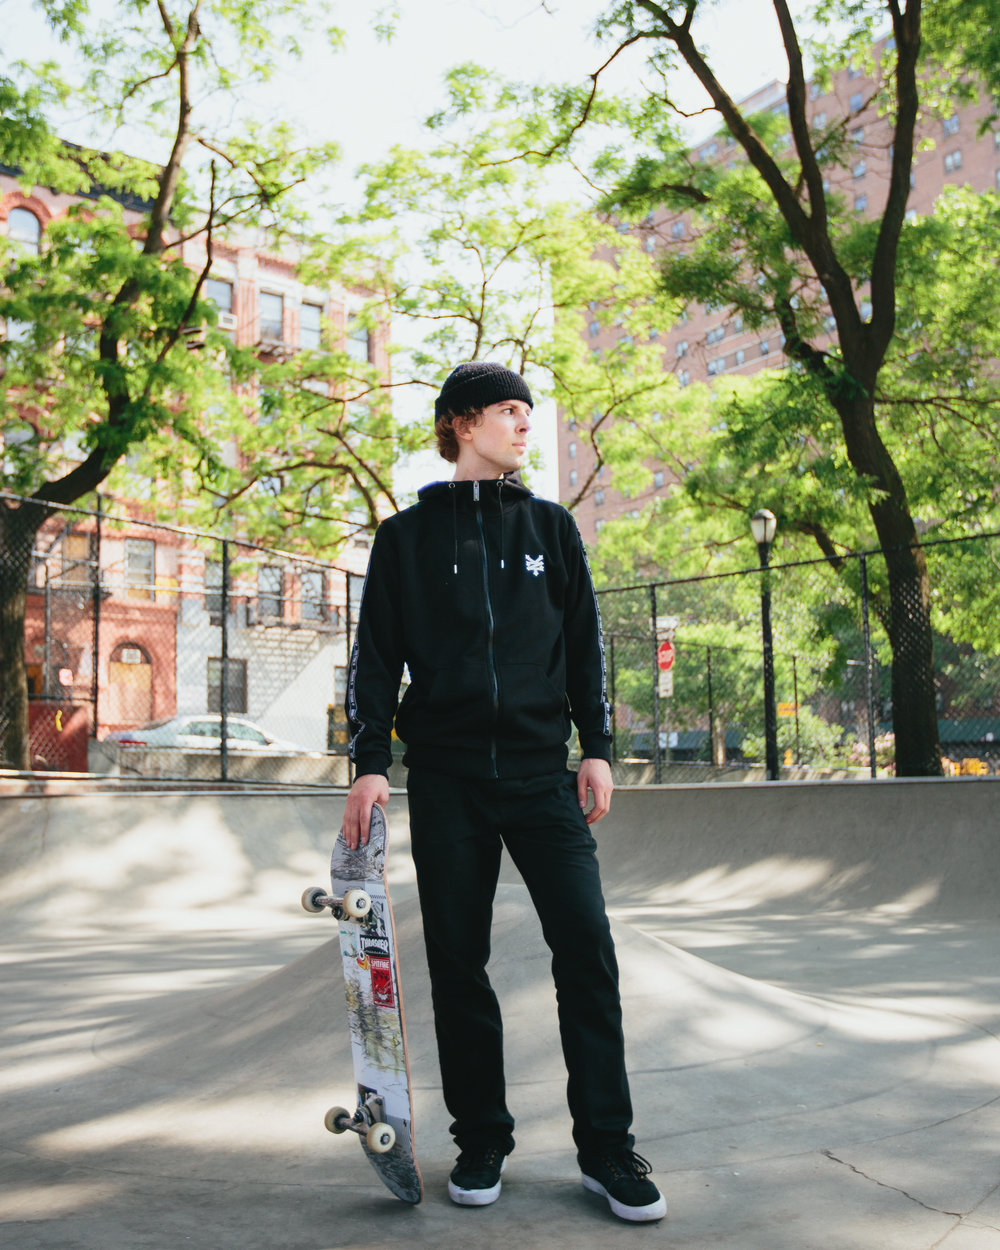 Prisma new york city skateboard